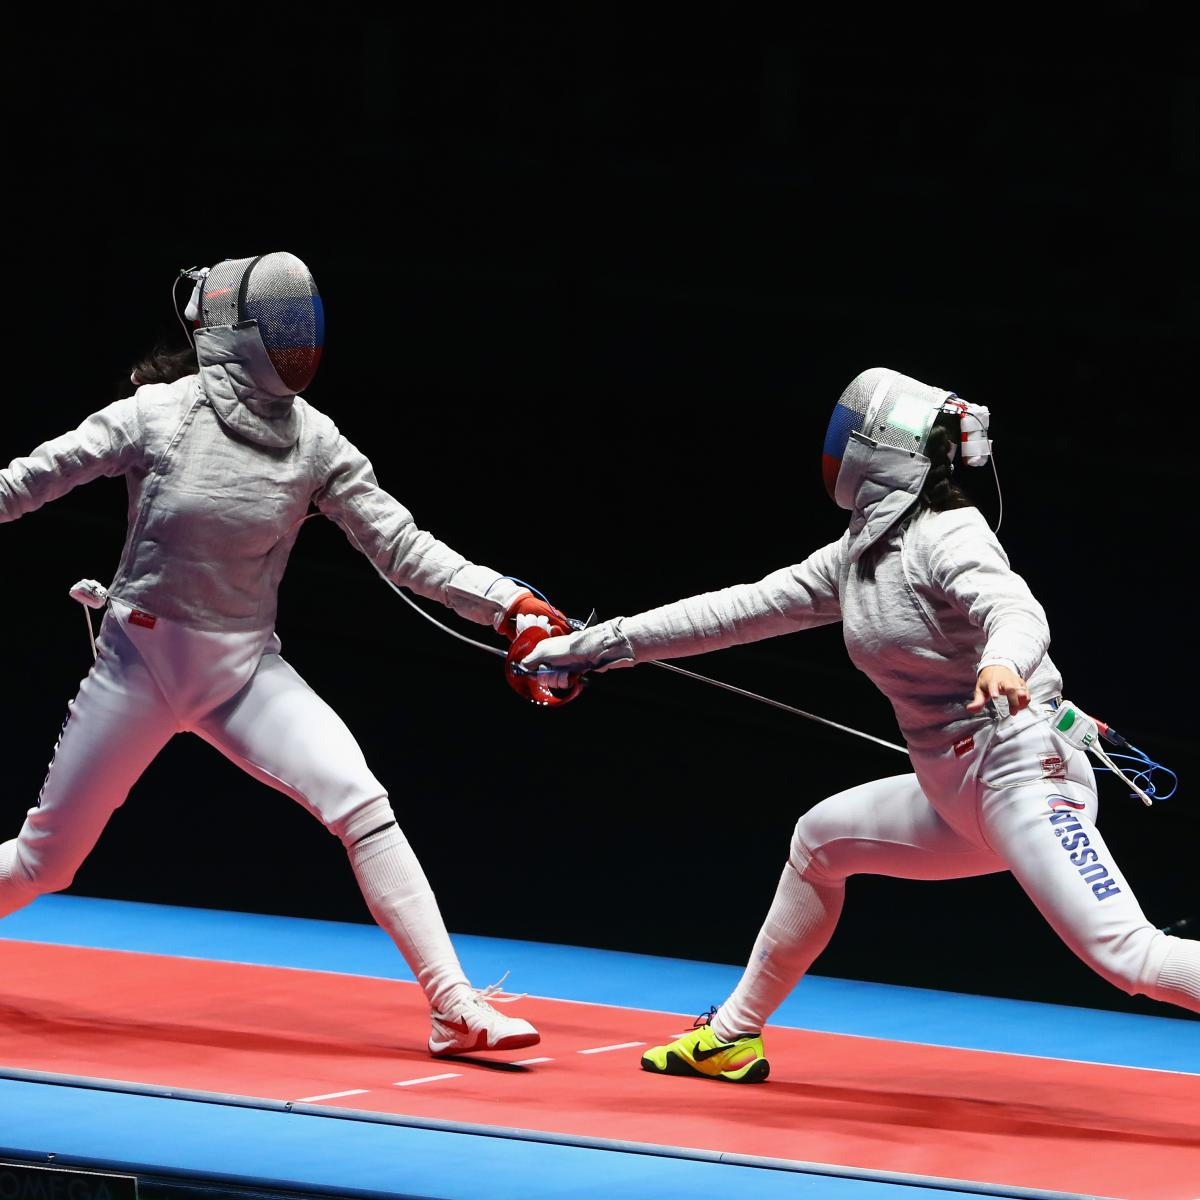 Olympic Fencing 2016: Medal Winners and Scores After ...